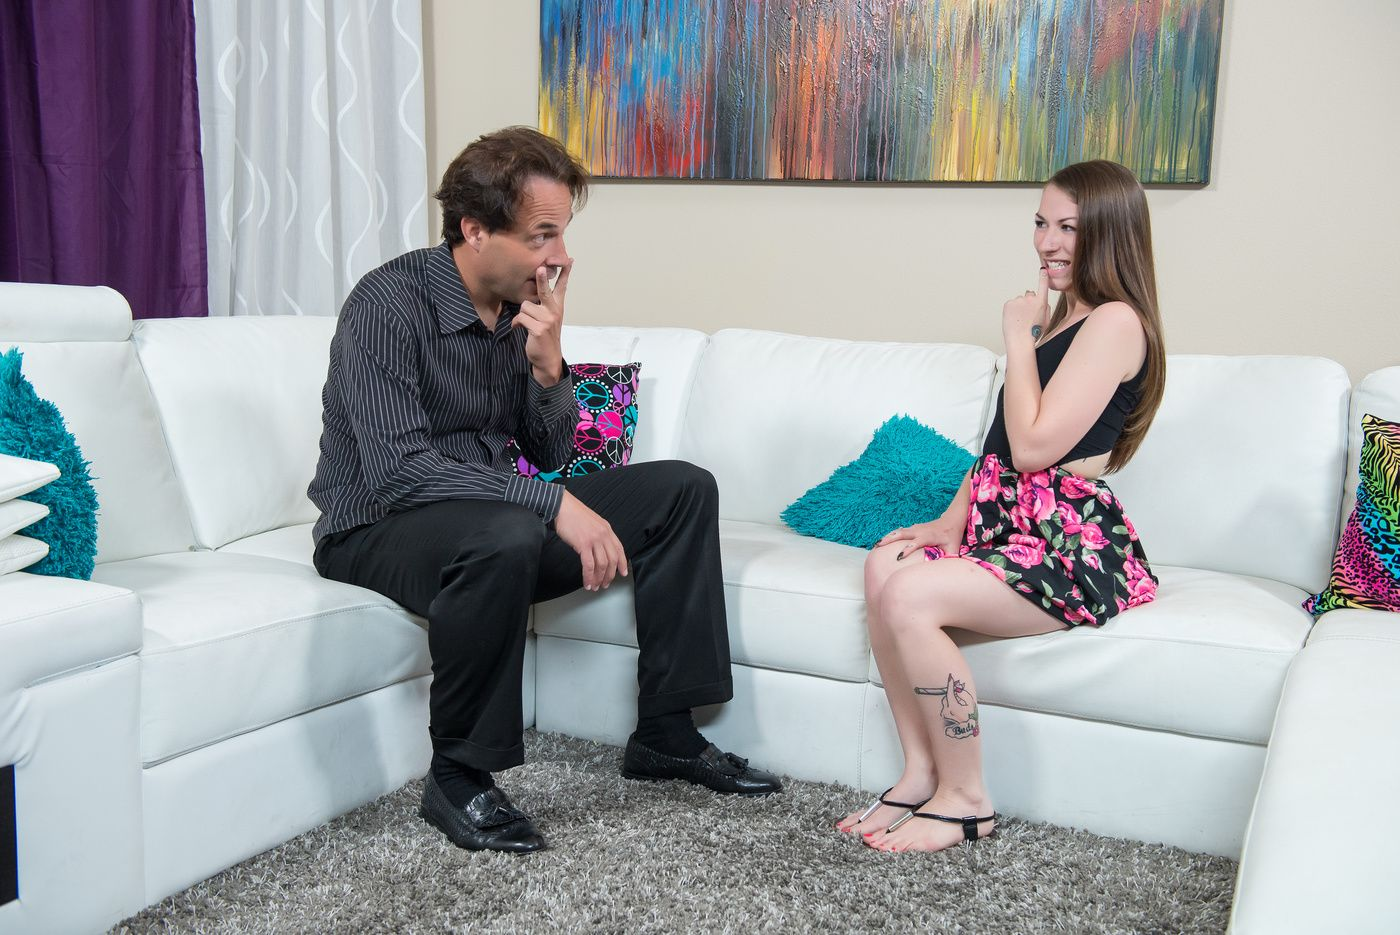 Box of photos 3of4 casting couch new girl erin rodgers - Casting couch porn sex ...